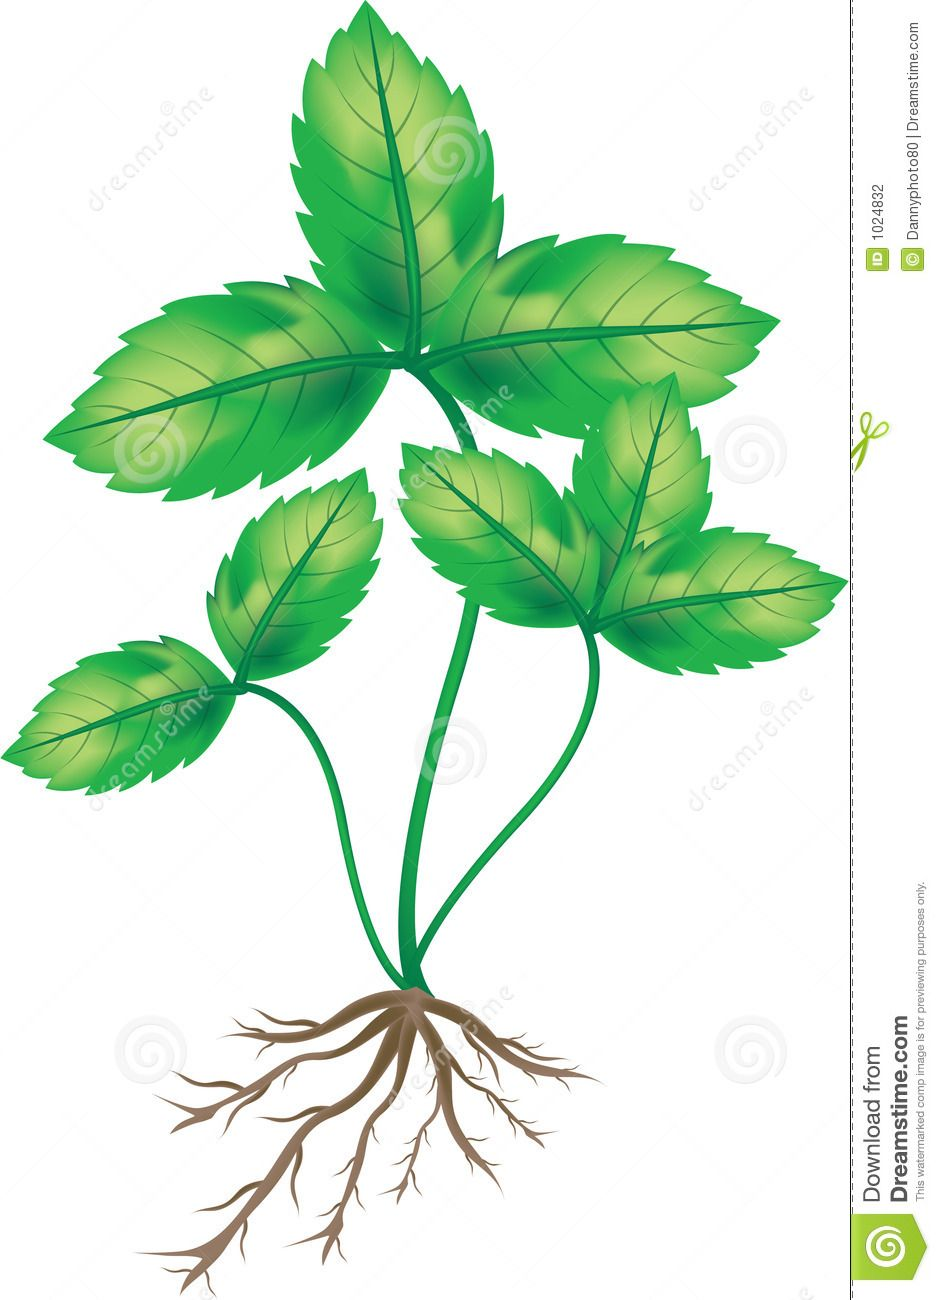 Roots clipart plant root. With clip art roo